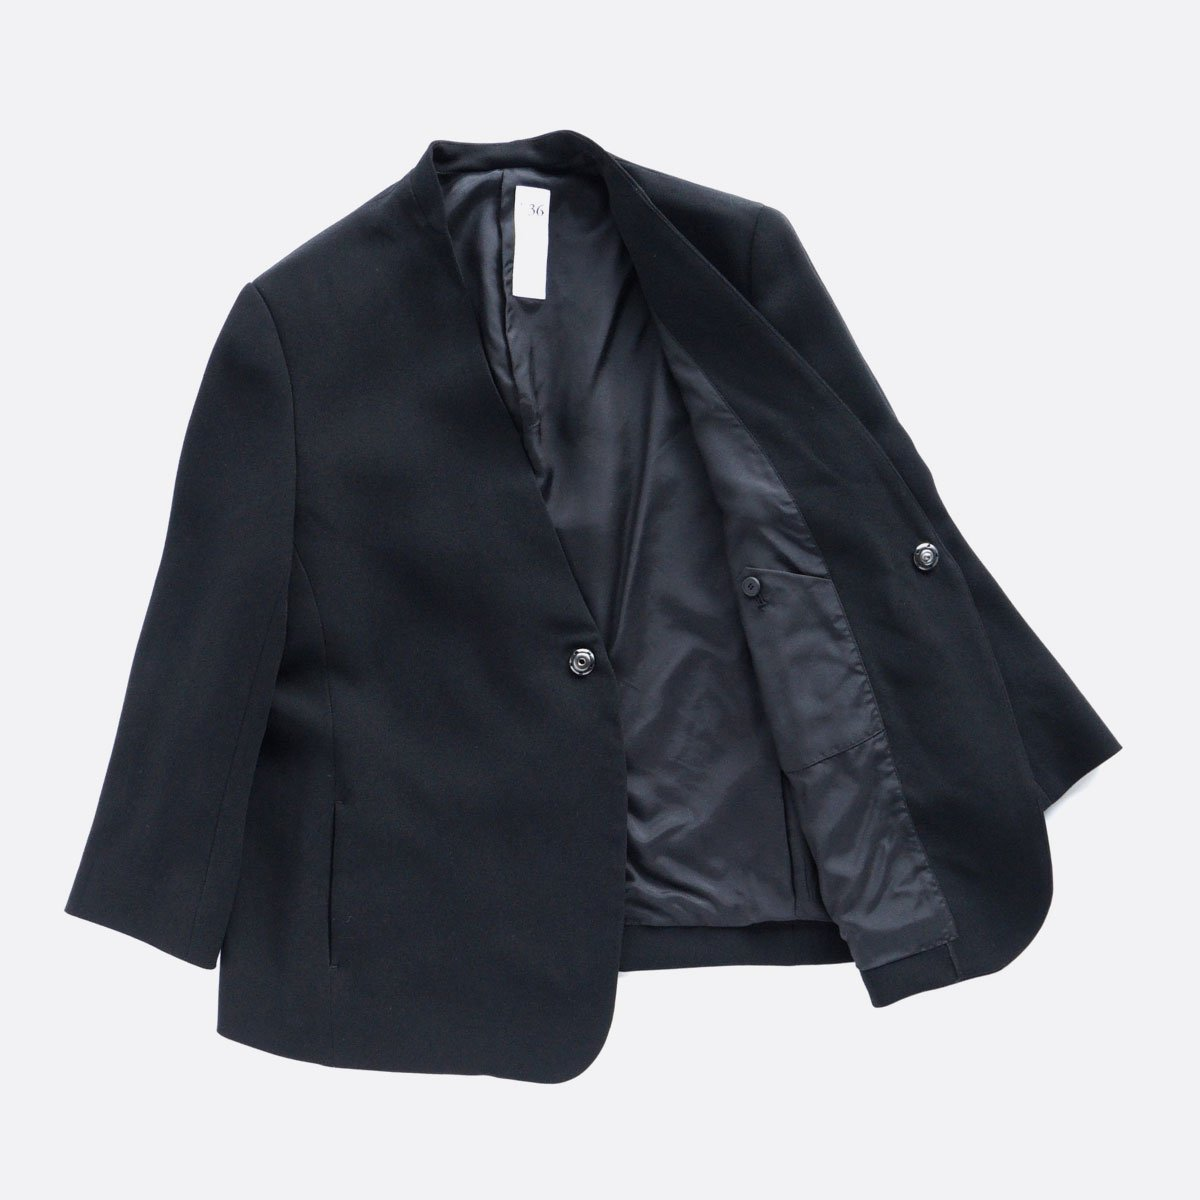 NO CONTROL AIR ACETATE & POLYESTER DOUBLE CROTH NO COLOR JACKET (BLACK)4